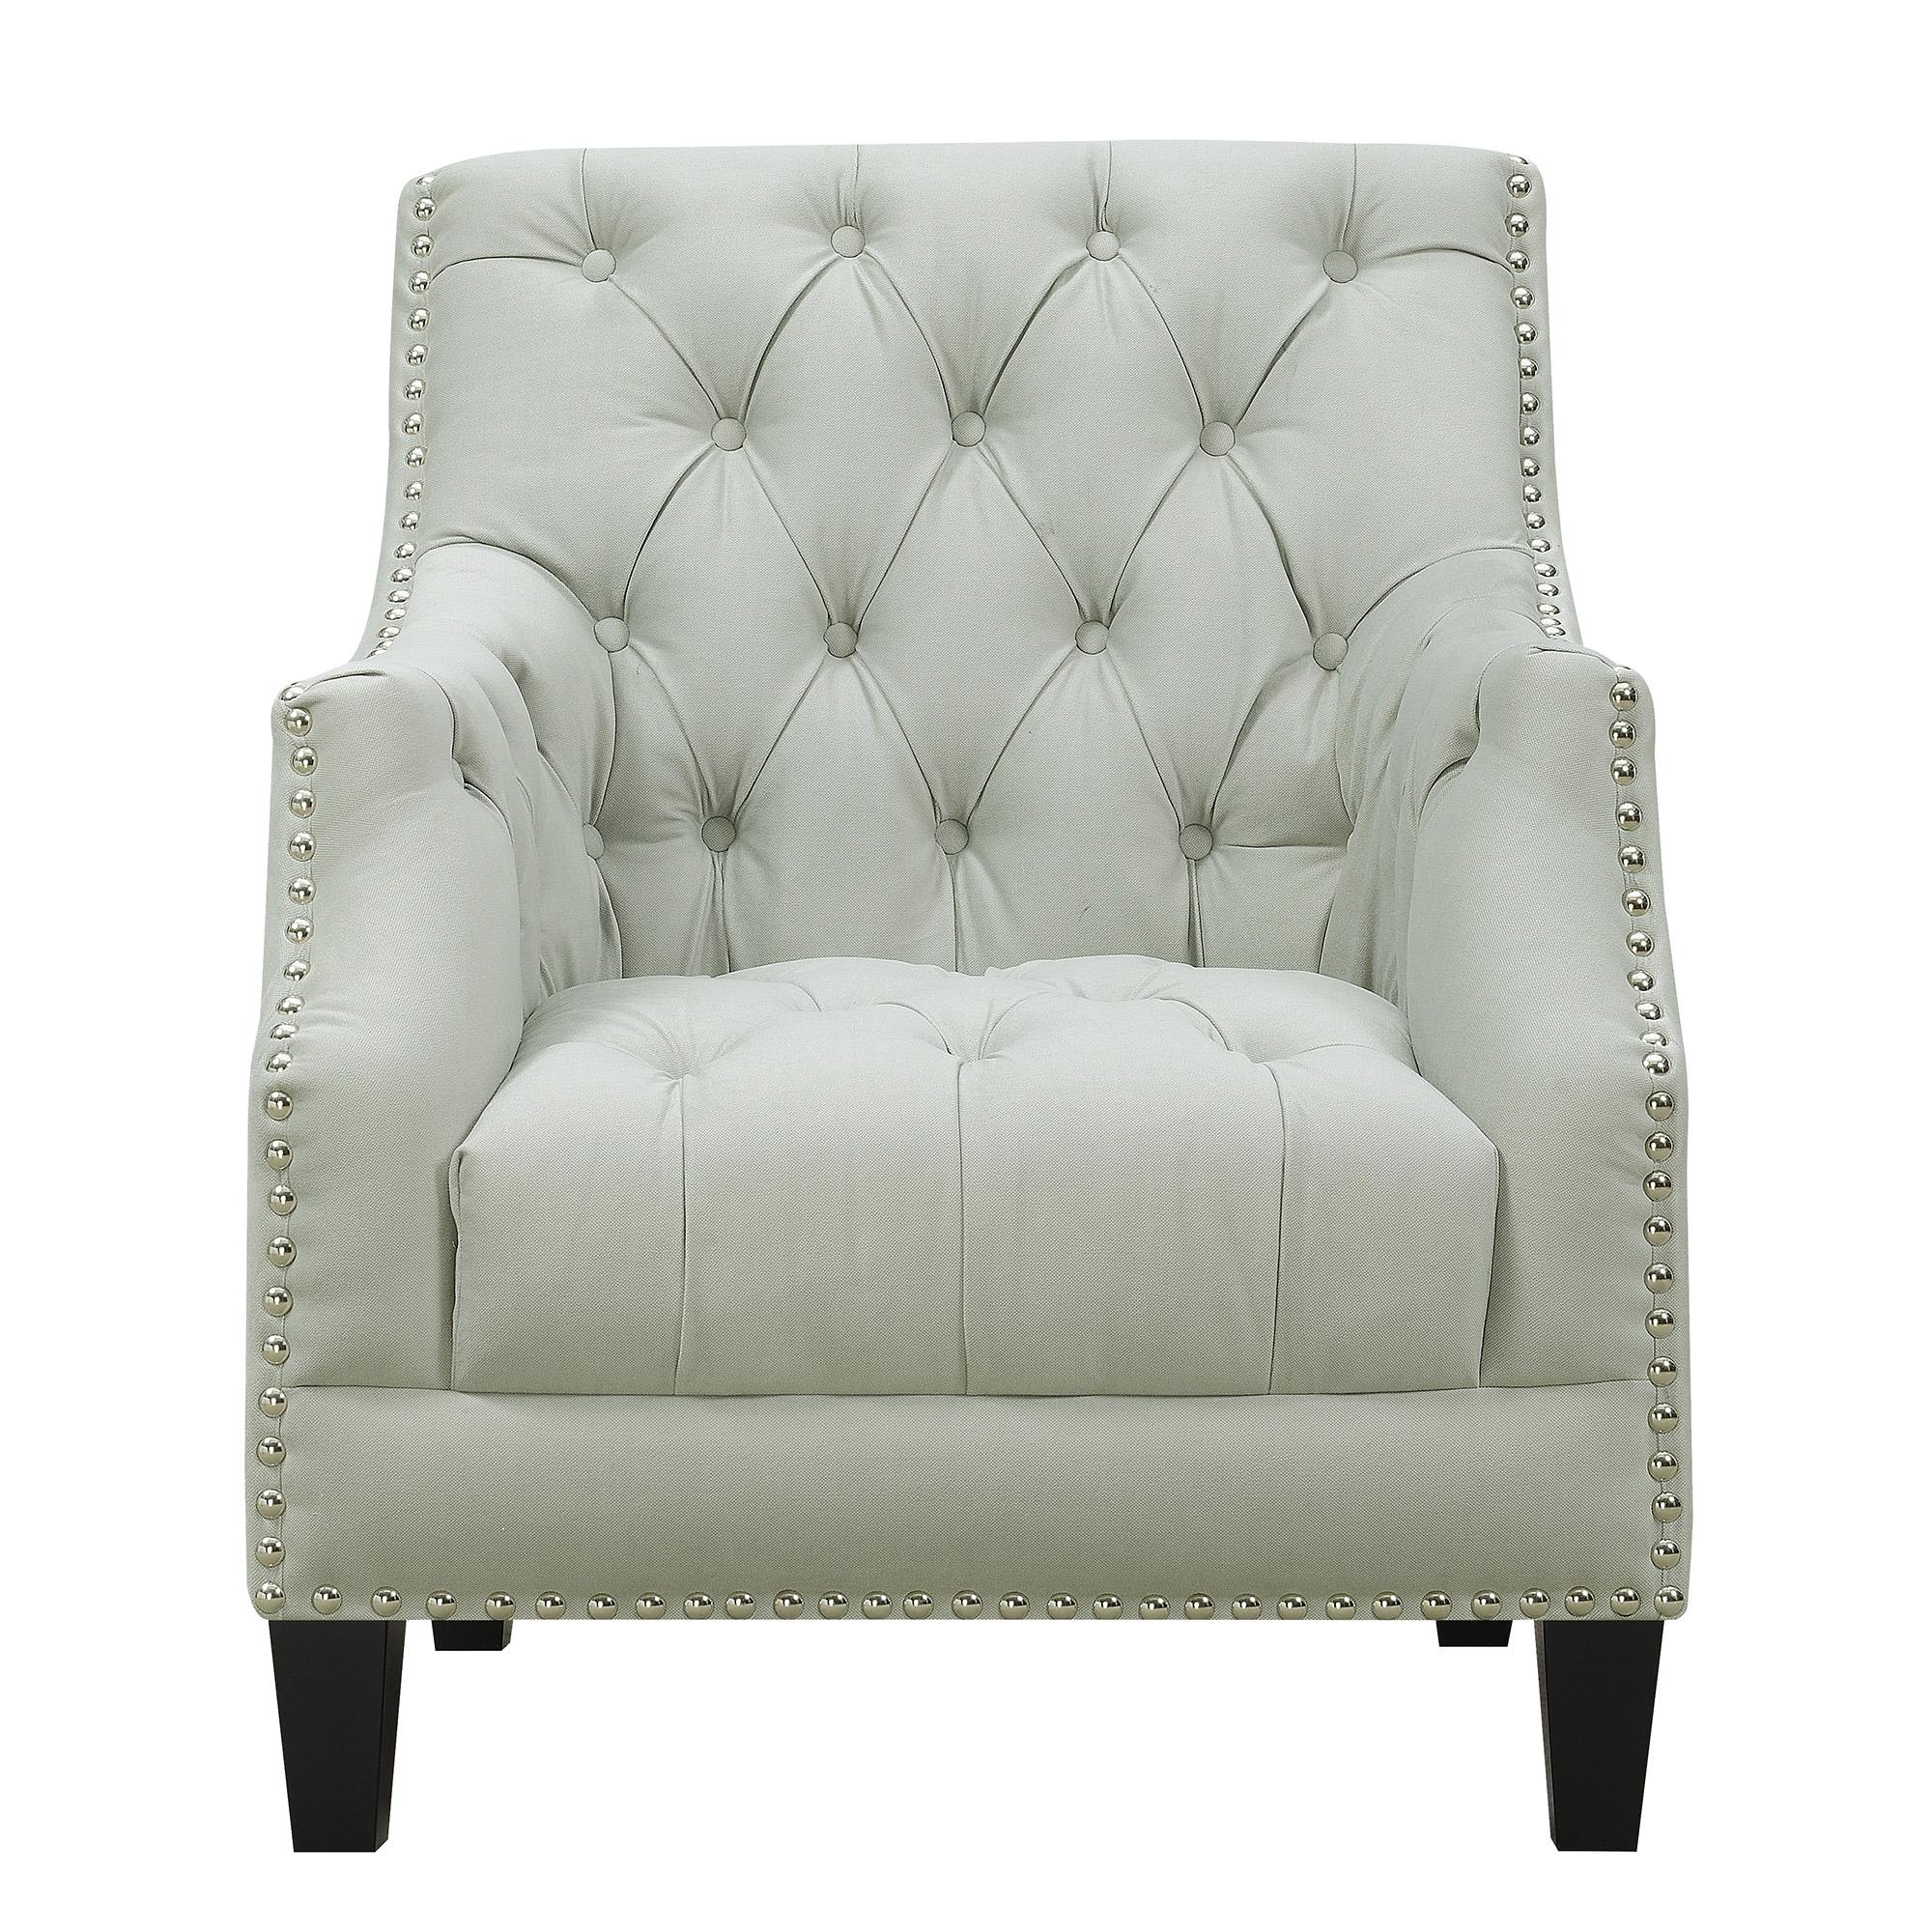 Fantastic Picket House Perry Pumice Fabric Button Tufted Accent Chair Pabps2019 Chair Design Images Pabps2019Com